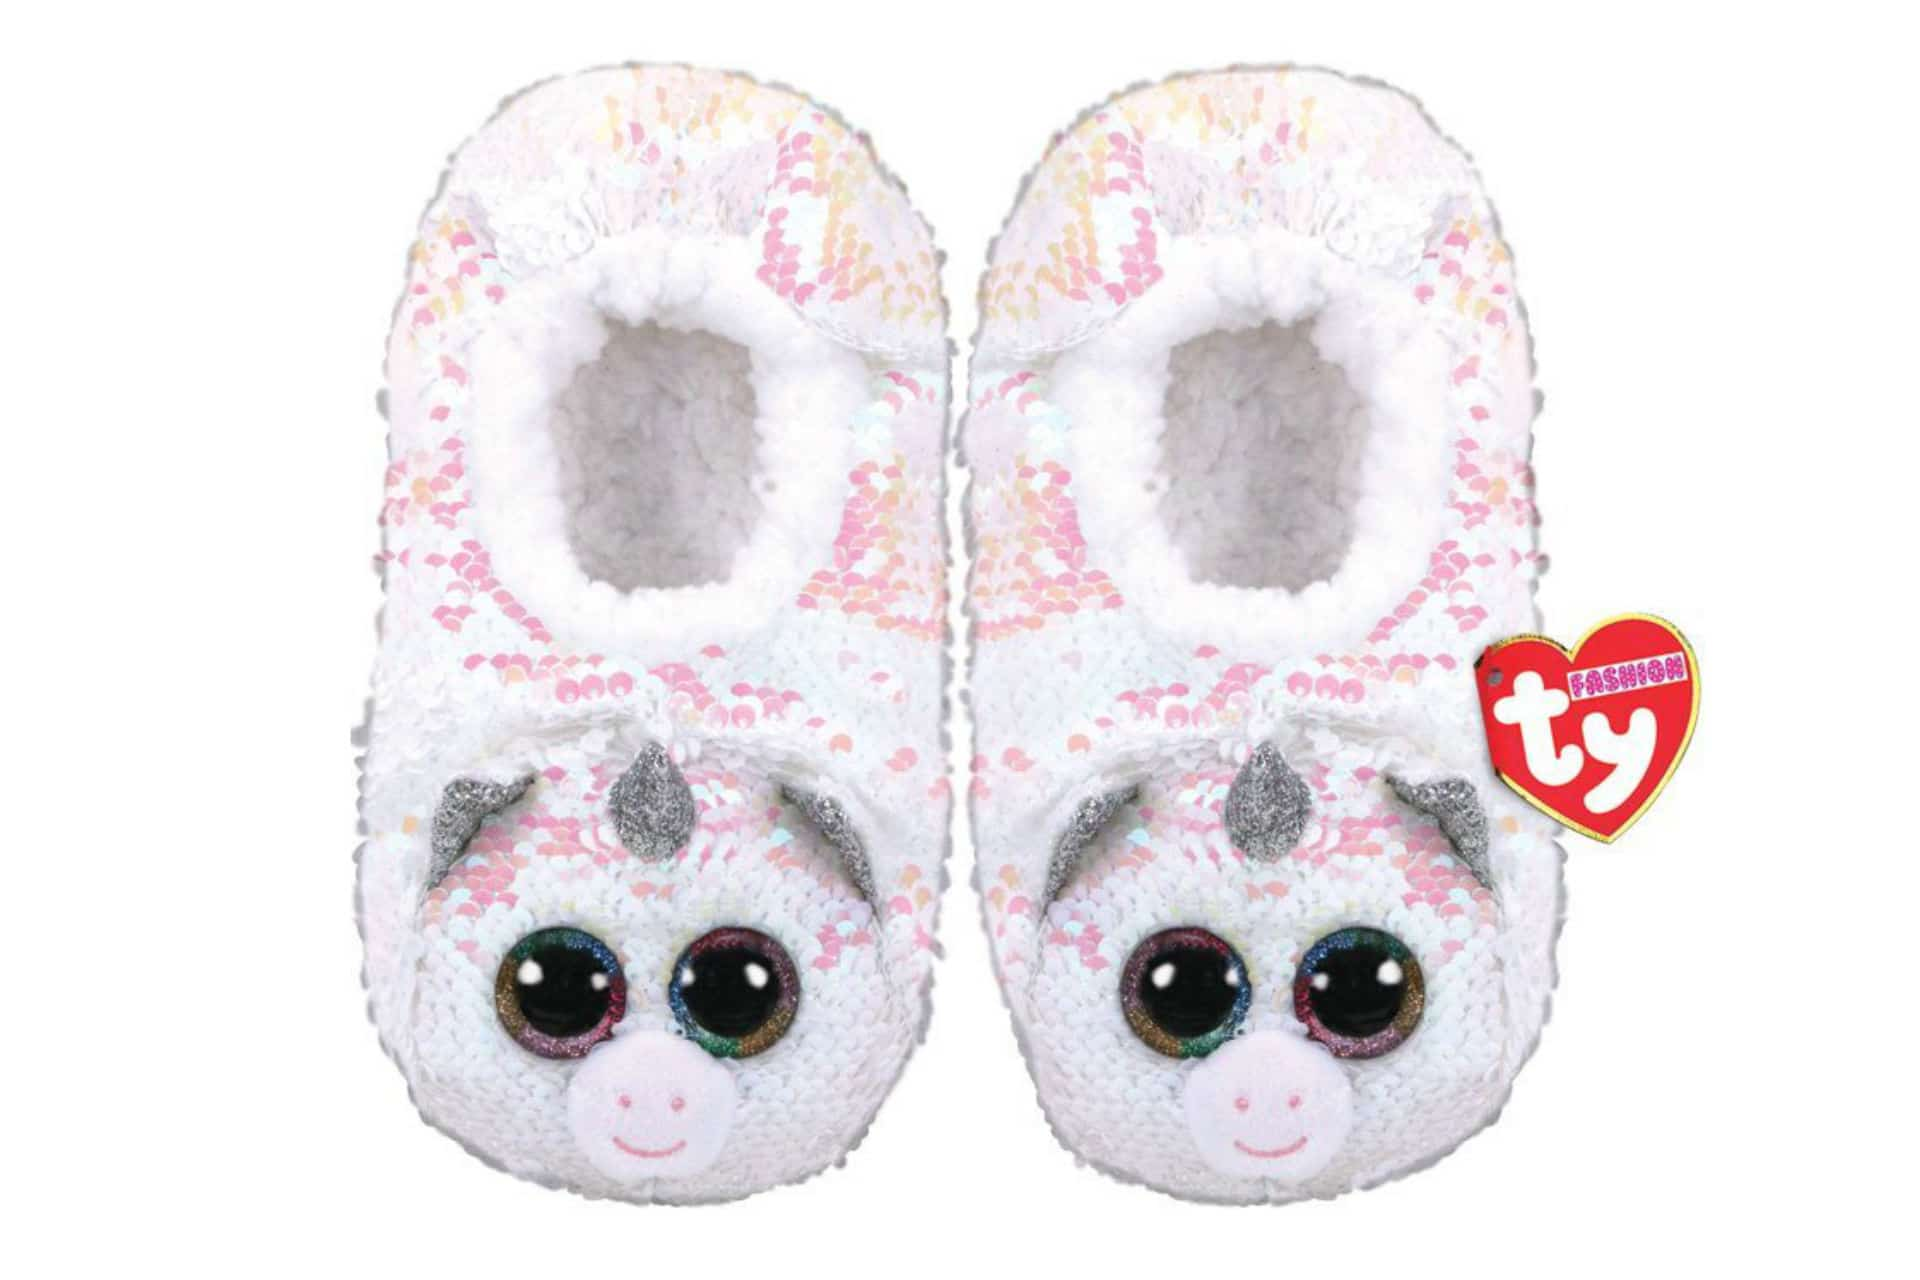 pair of sequin-covered unicorn slippers